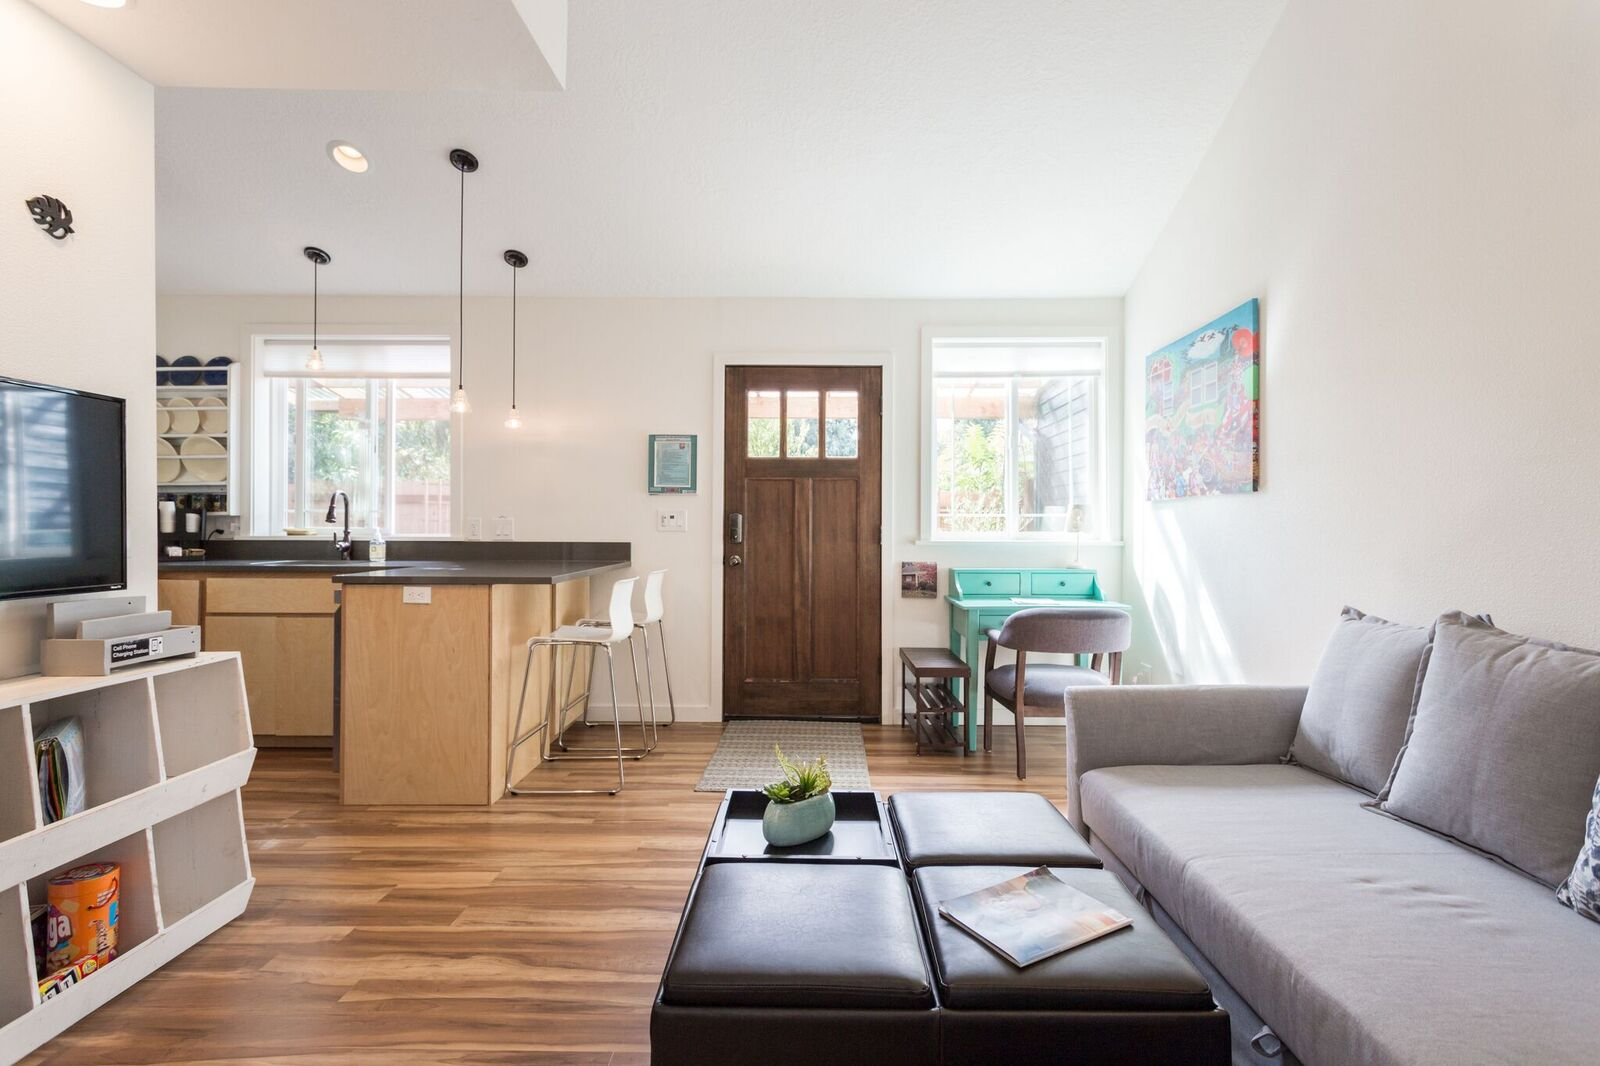 Build Your Own Garage >> Build Small, Live Large: Portland's Accessory Dwelling Unit Tour | Accessory Dwellings